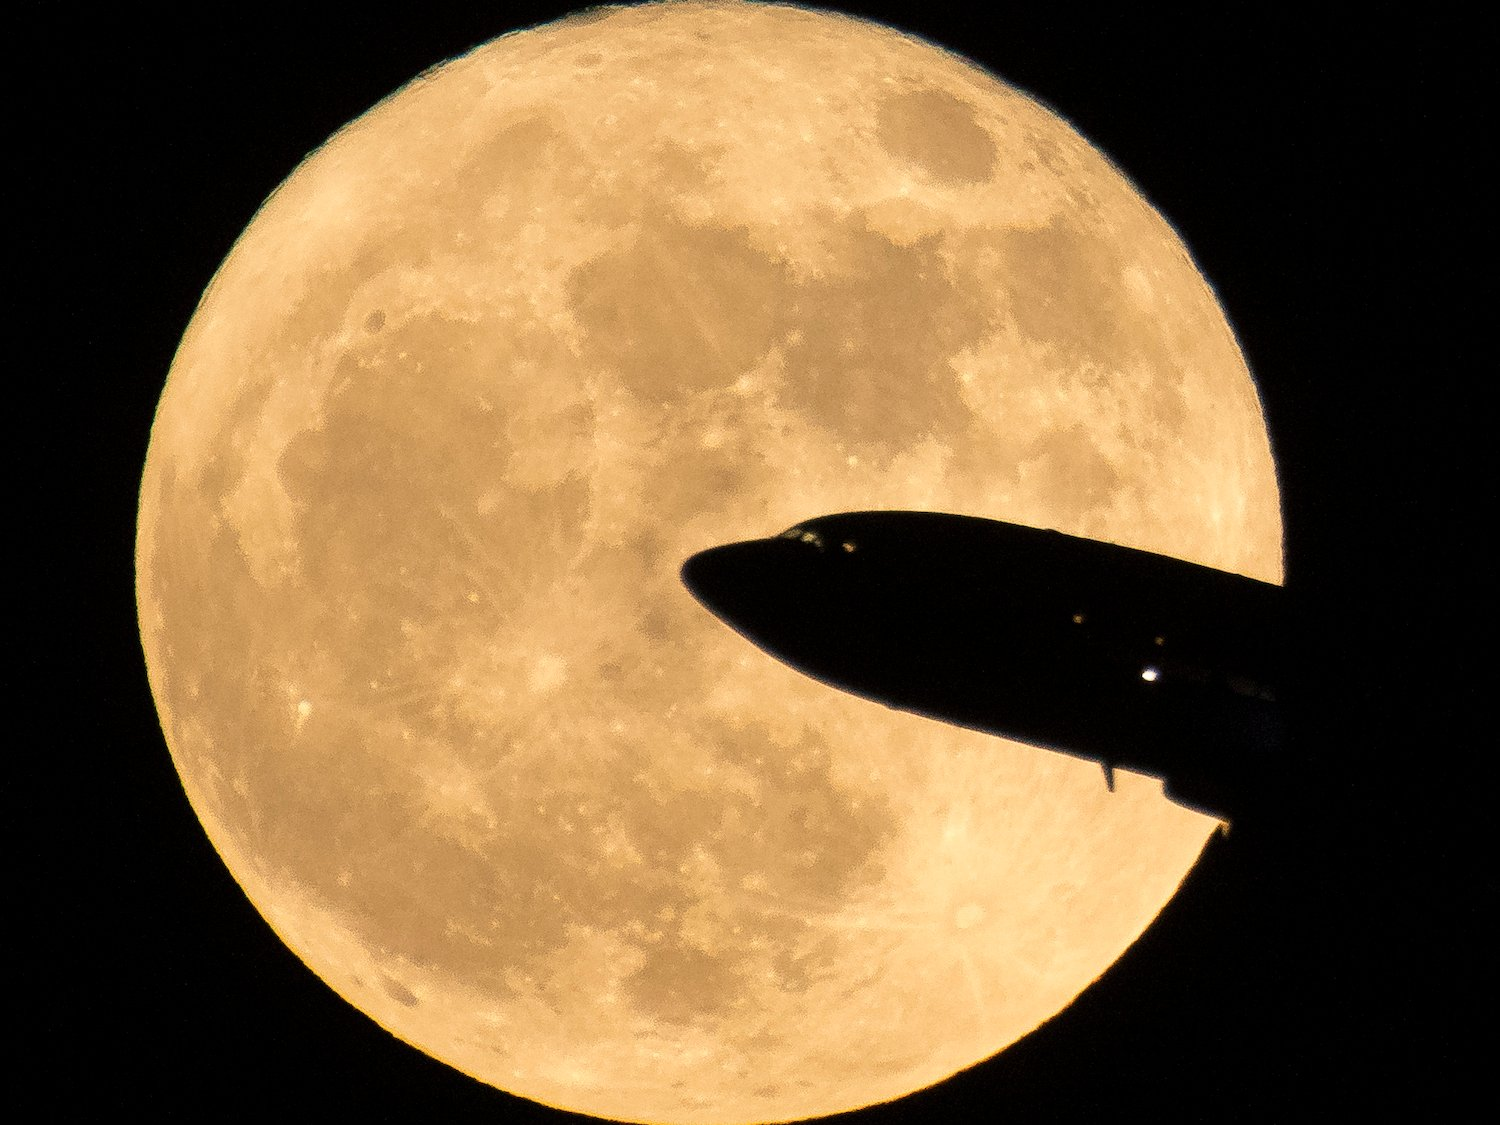 The first supermoon of 2018 will appear on New Year's Day – and it's more special than usual